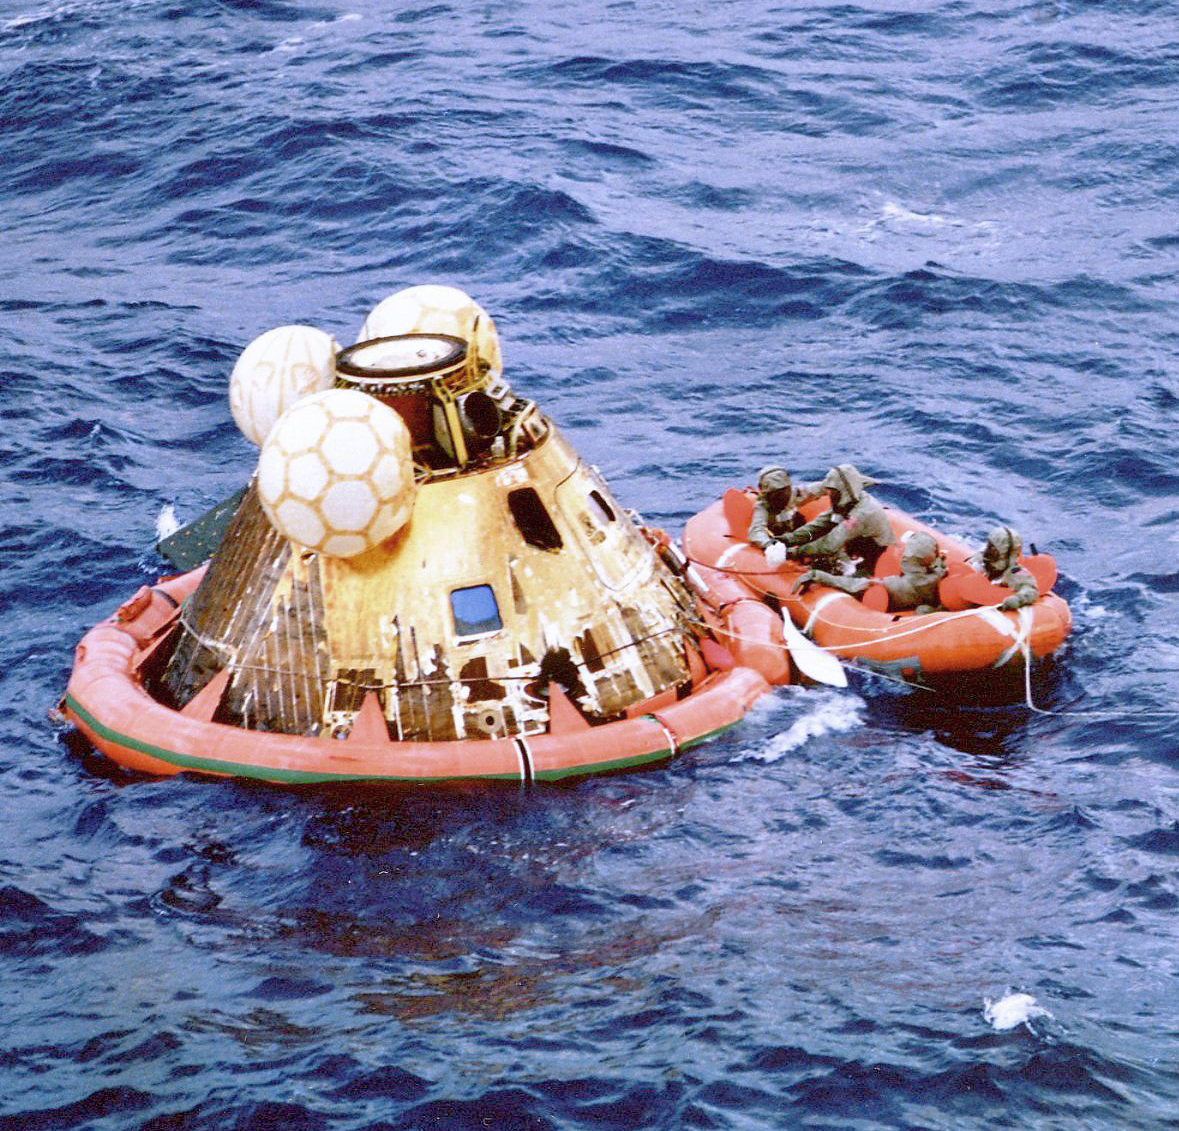 apollo 11 splashdown location - photo #10